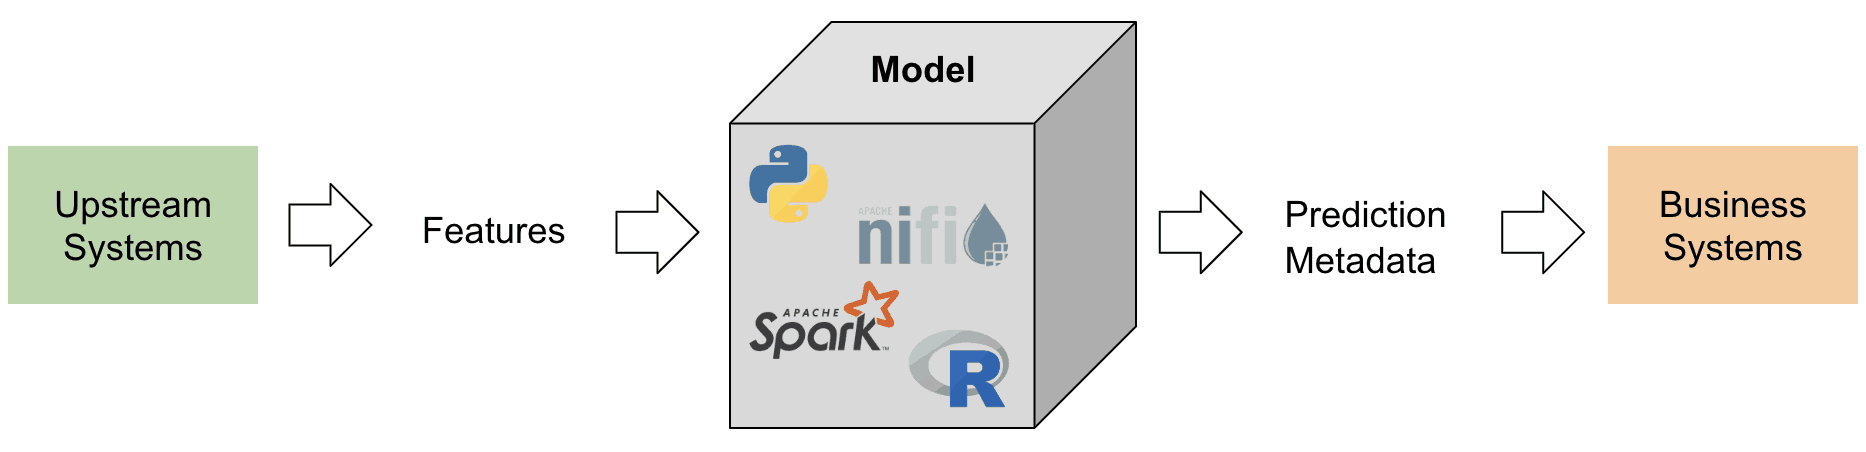 Creating an Open Standard: Machine Learning Governance using.